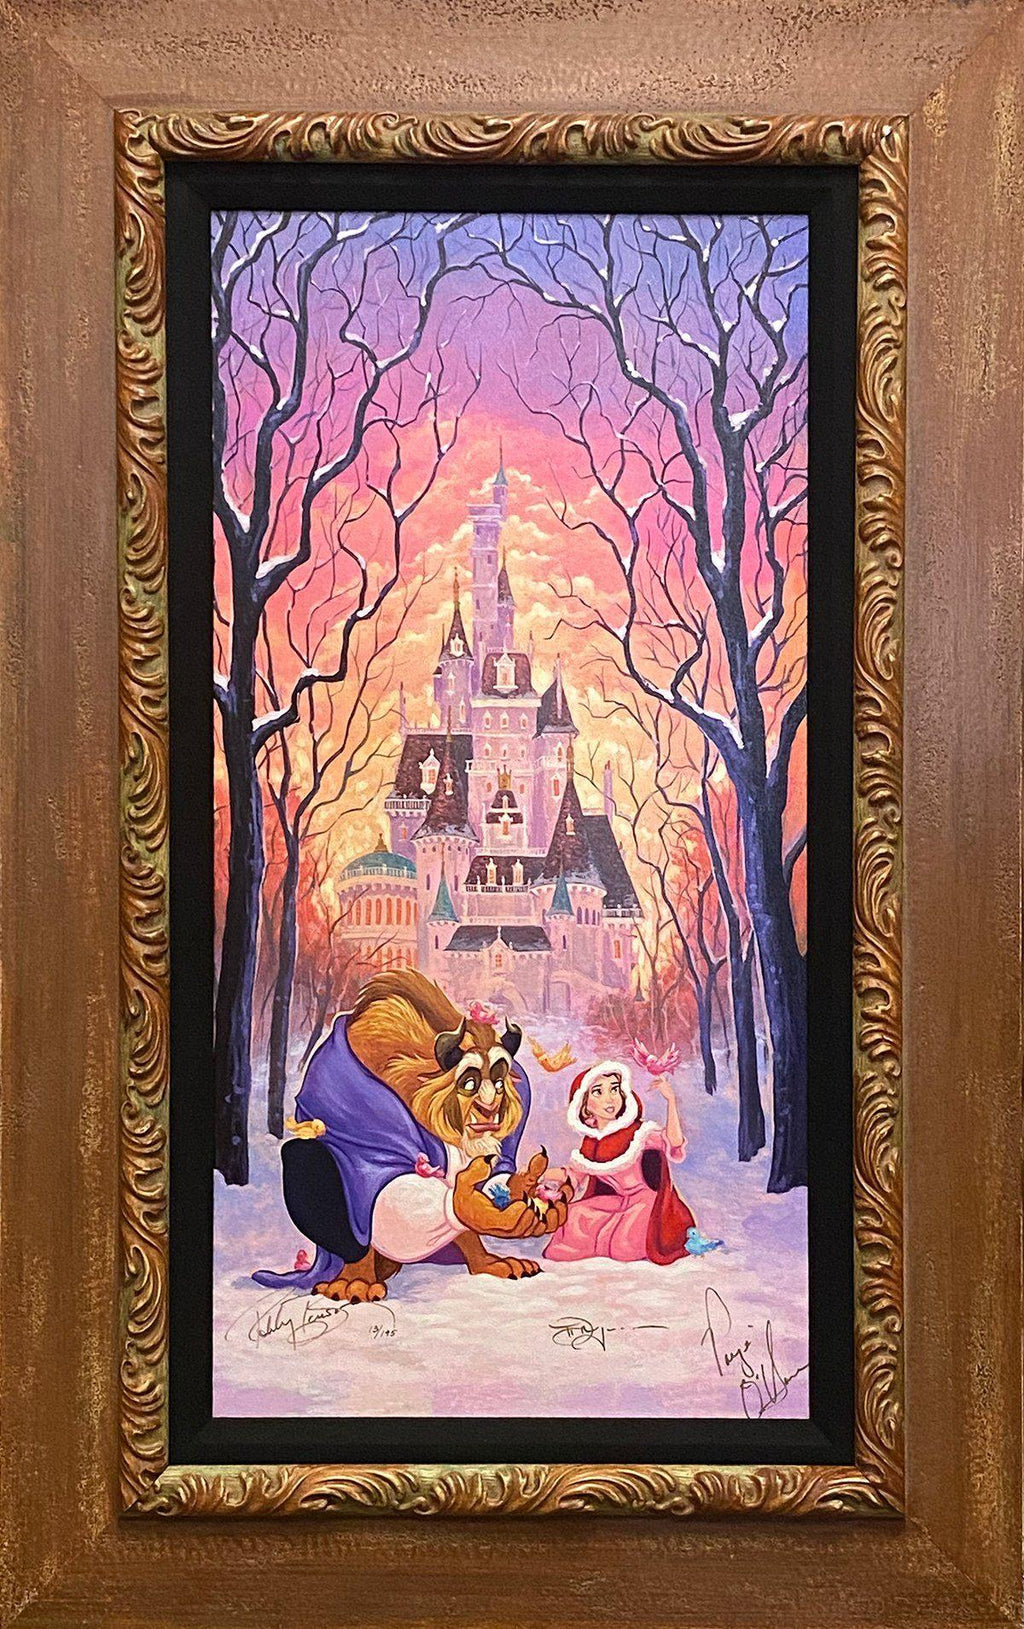 TRIPLE SIGNED DISNEY LIMITED EDITION: THERE'S SOMETHING SWEET Giclée On Canvas Tim Rogerson